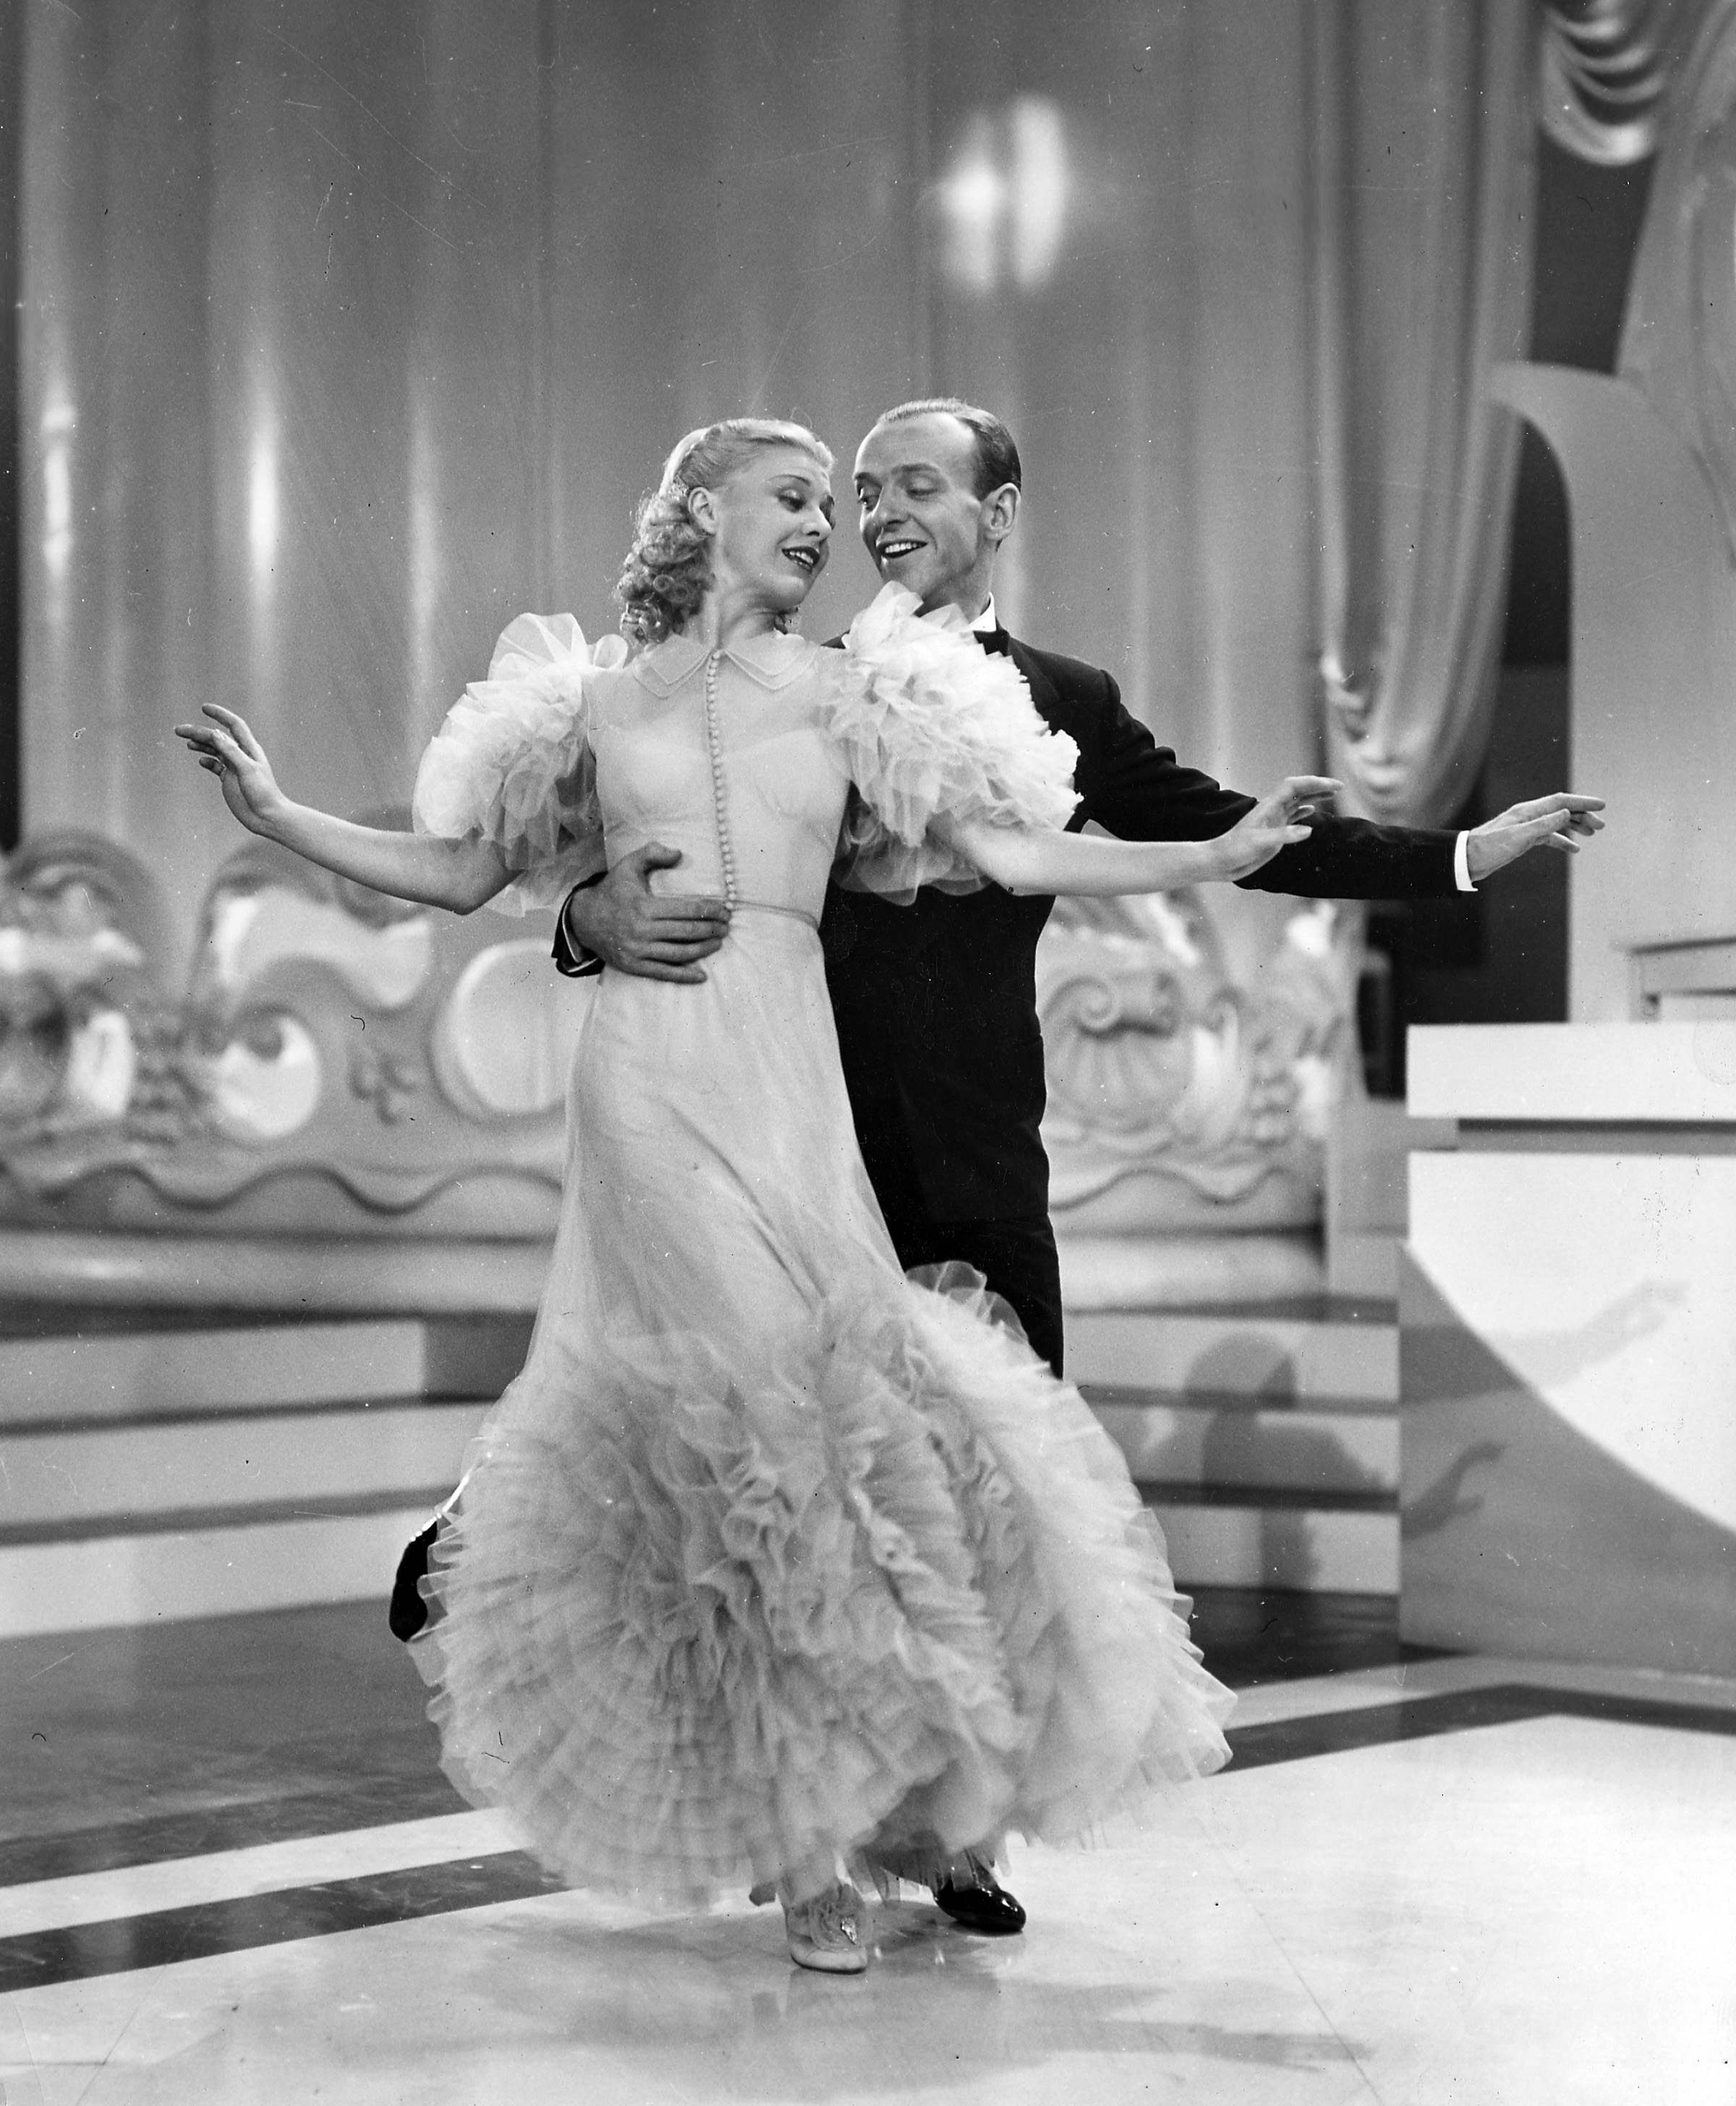 Swing TimeÓ (1936), one of the silver screenÕs most amusing and romantic musicals, will be presented as part of the Academy of Motion Picture Arts and SciencesÕ George Stevens Lecture on Directing series at on Tuesday, October 26, at 7:30 p.m. at the Samuel Goldwyn Theater.  Pictured: Ginger Rogers and Fred Astaire in a scene from SWING TIME, 1936.